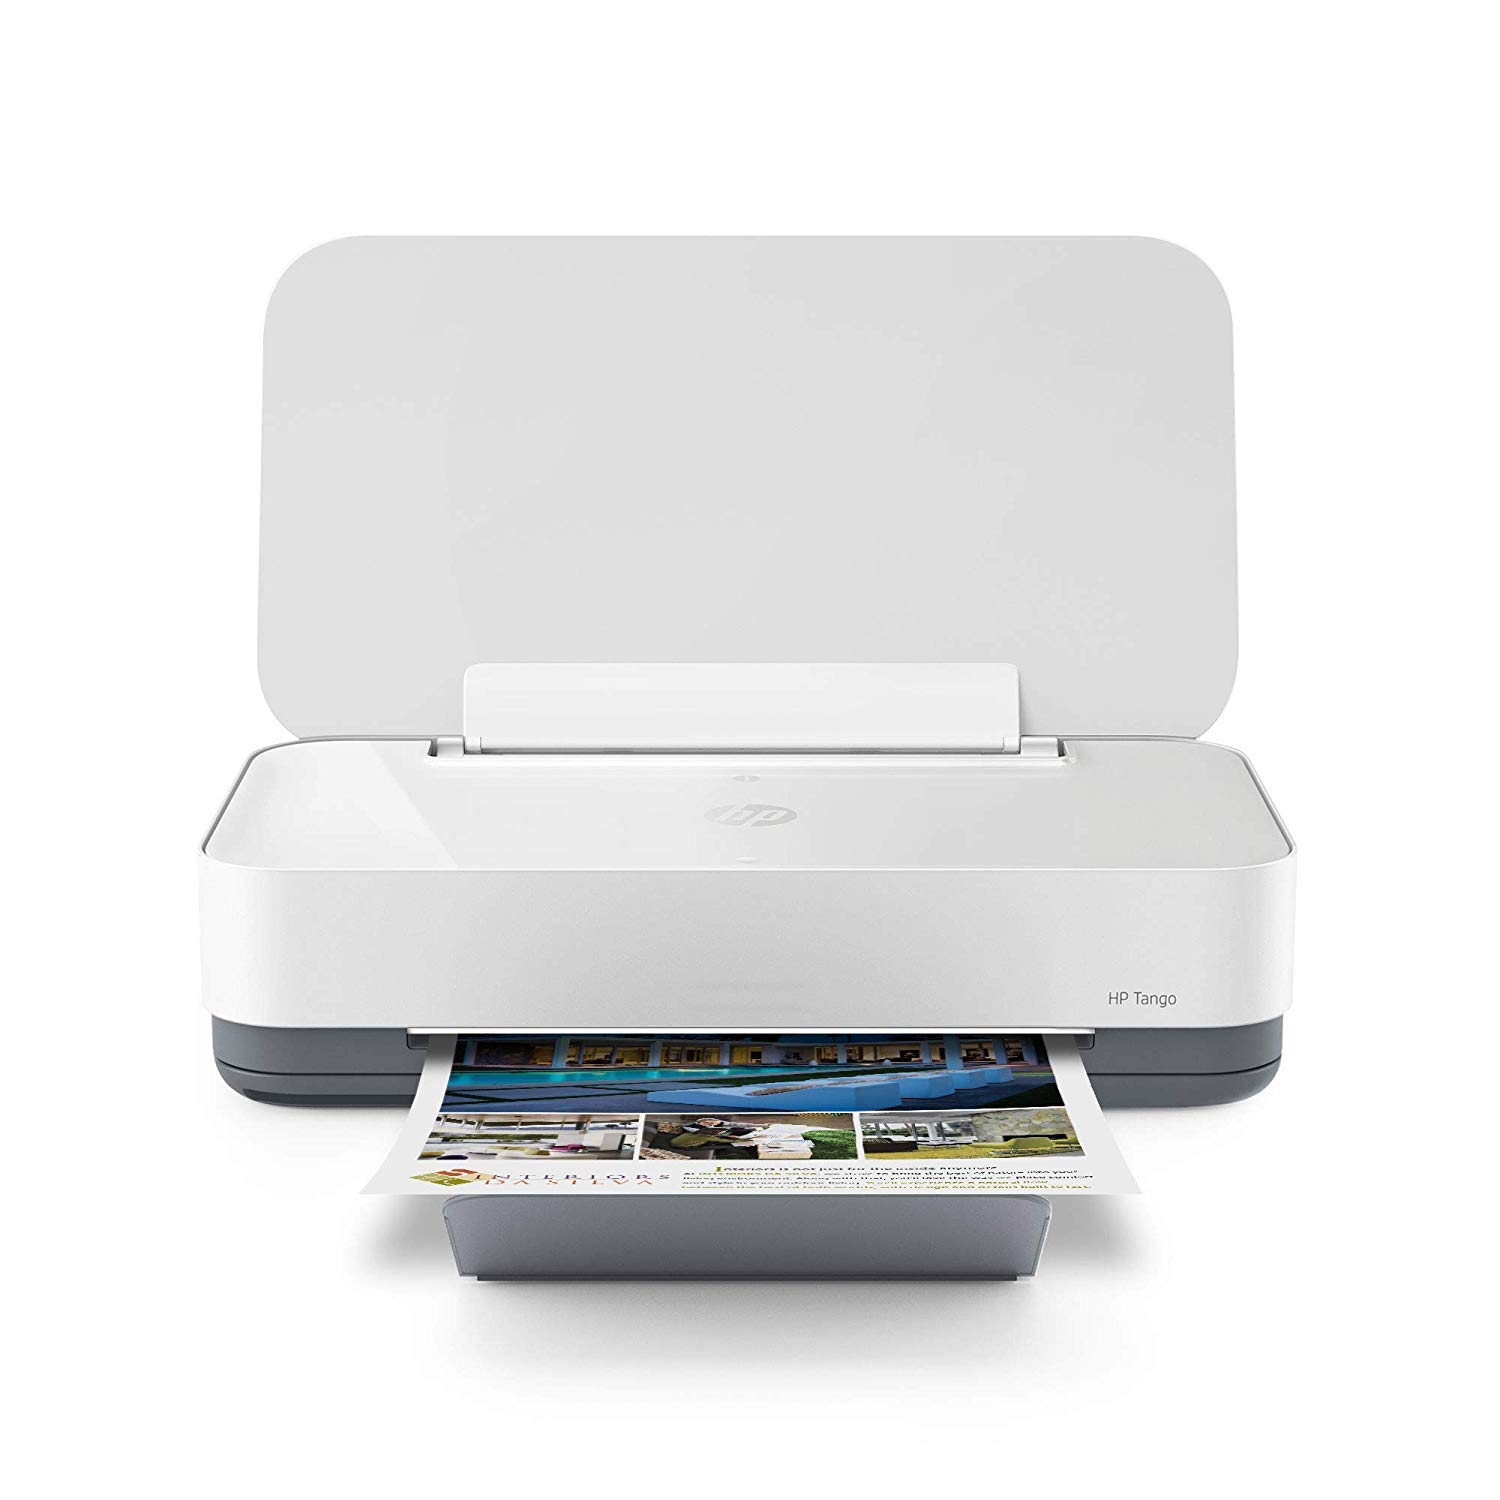 HP Tango Smart Home Printer – Designed for your Smartphone with Remote Wireless Printing,works with Alexa, HP Instant Ink & Amazon Dash Replenishment ready (2RY54A)